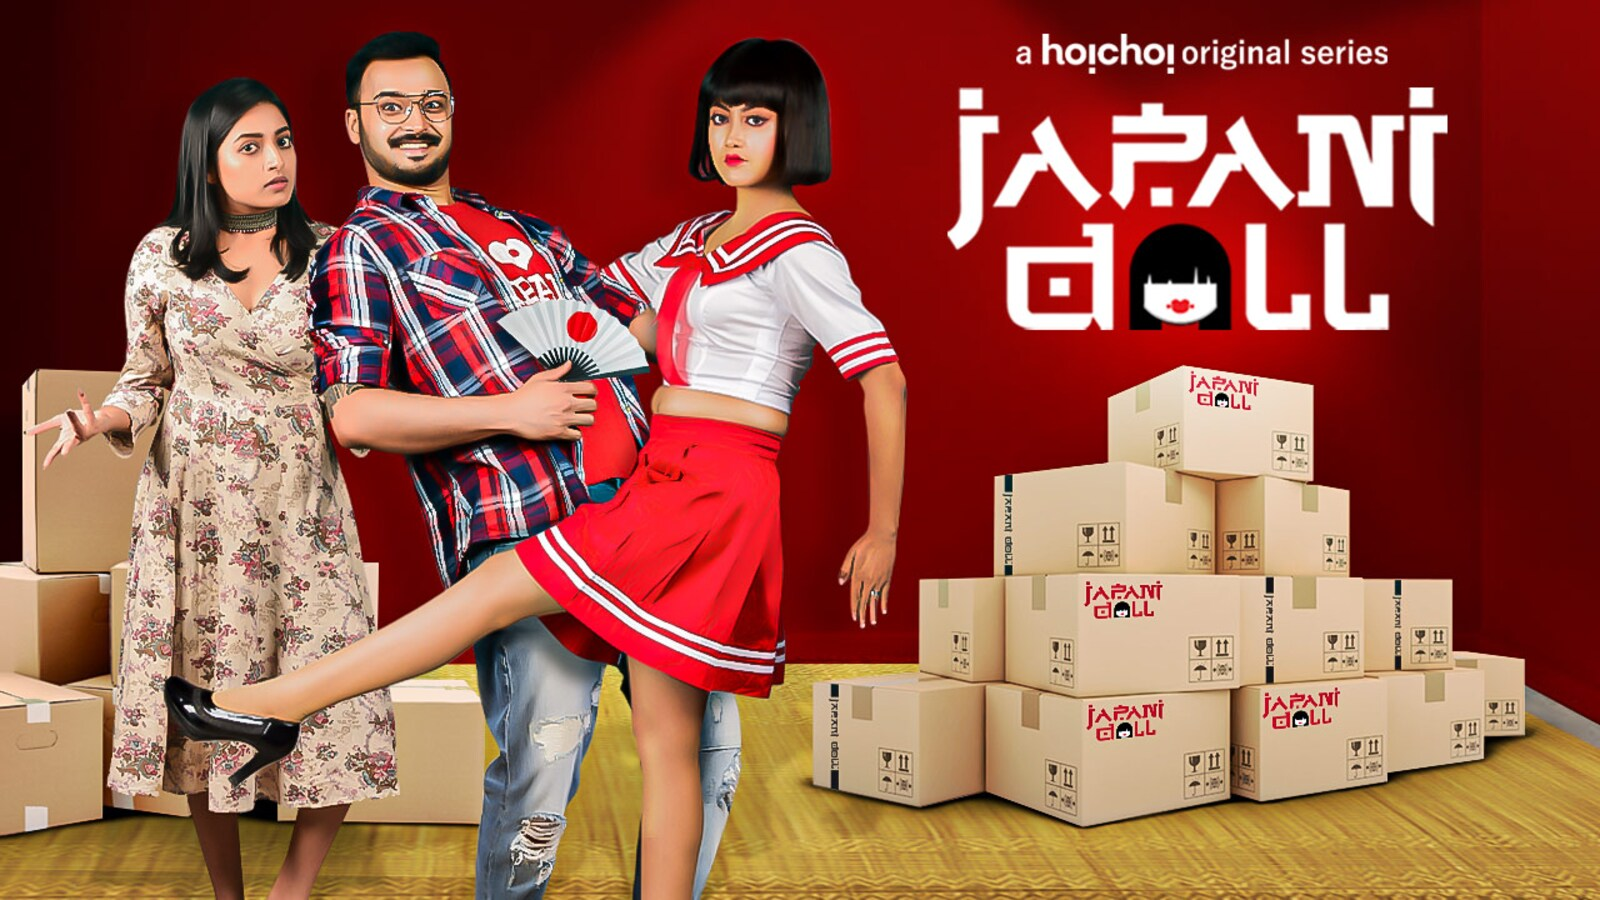 Image result for japani doll hoichoi